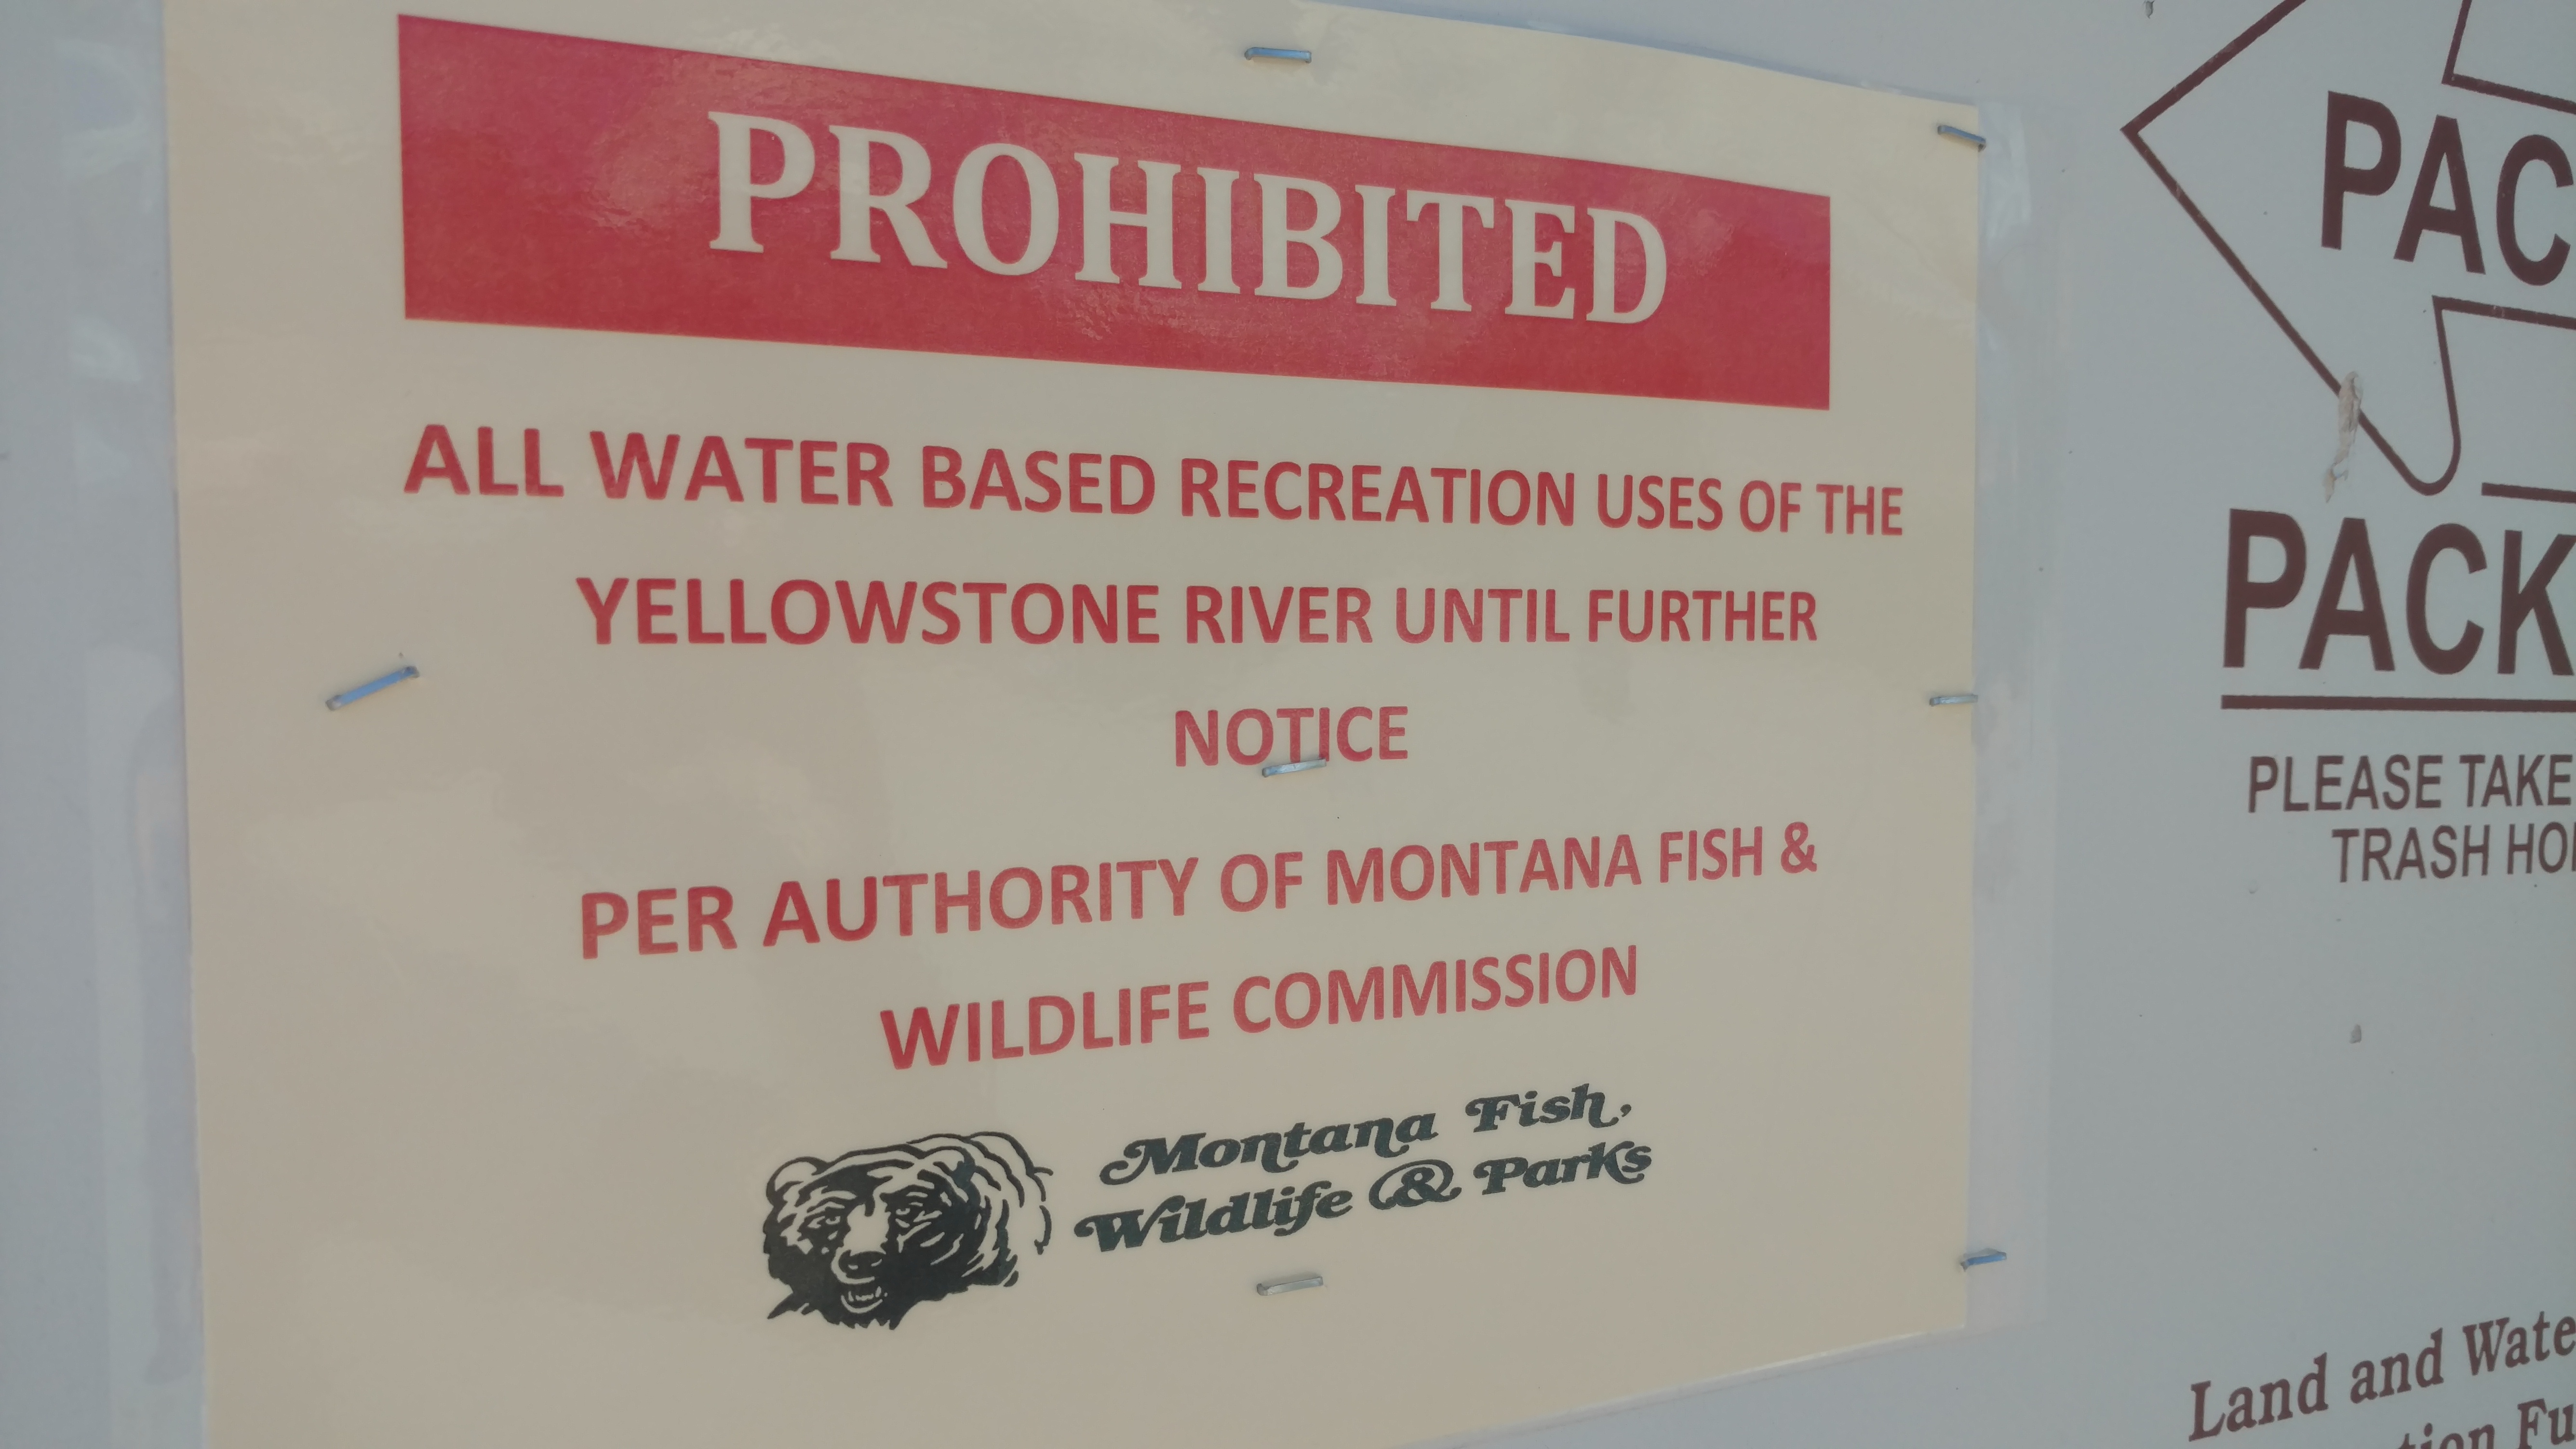 All recreation is closed at the Yellowstone River, MT.  photo:  ryan weaver/explorebigsky.com